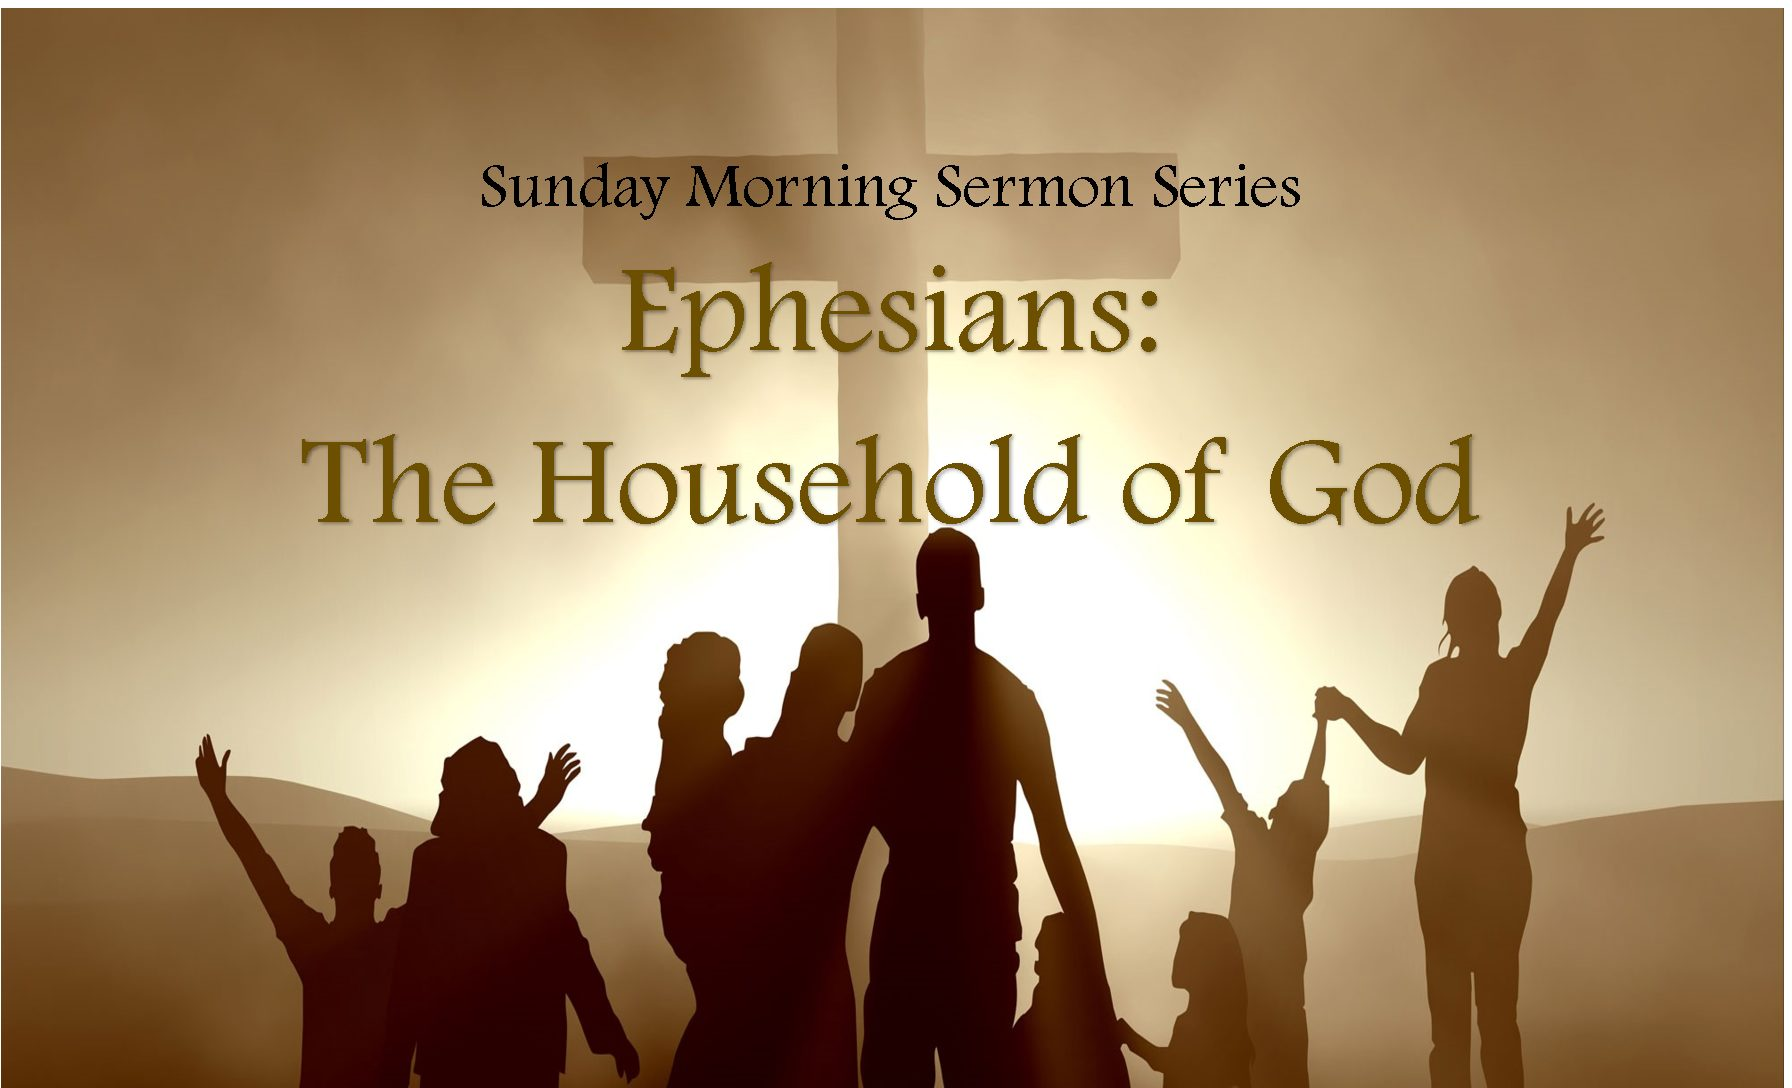 The Household of God: The Christian Defined